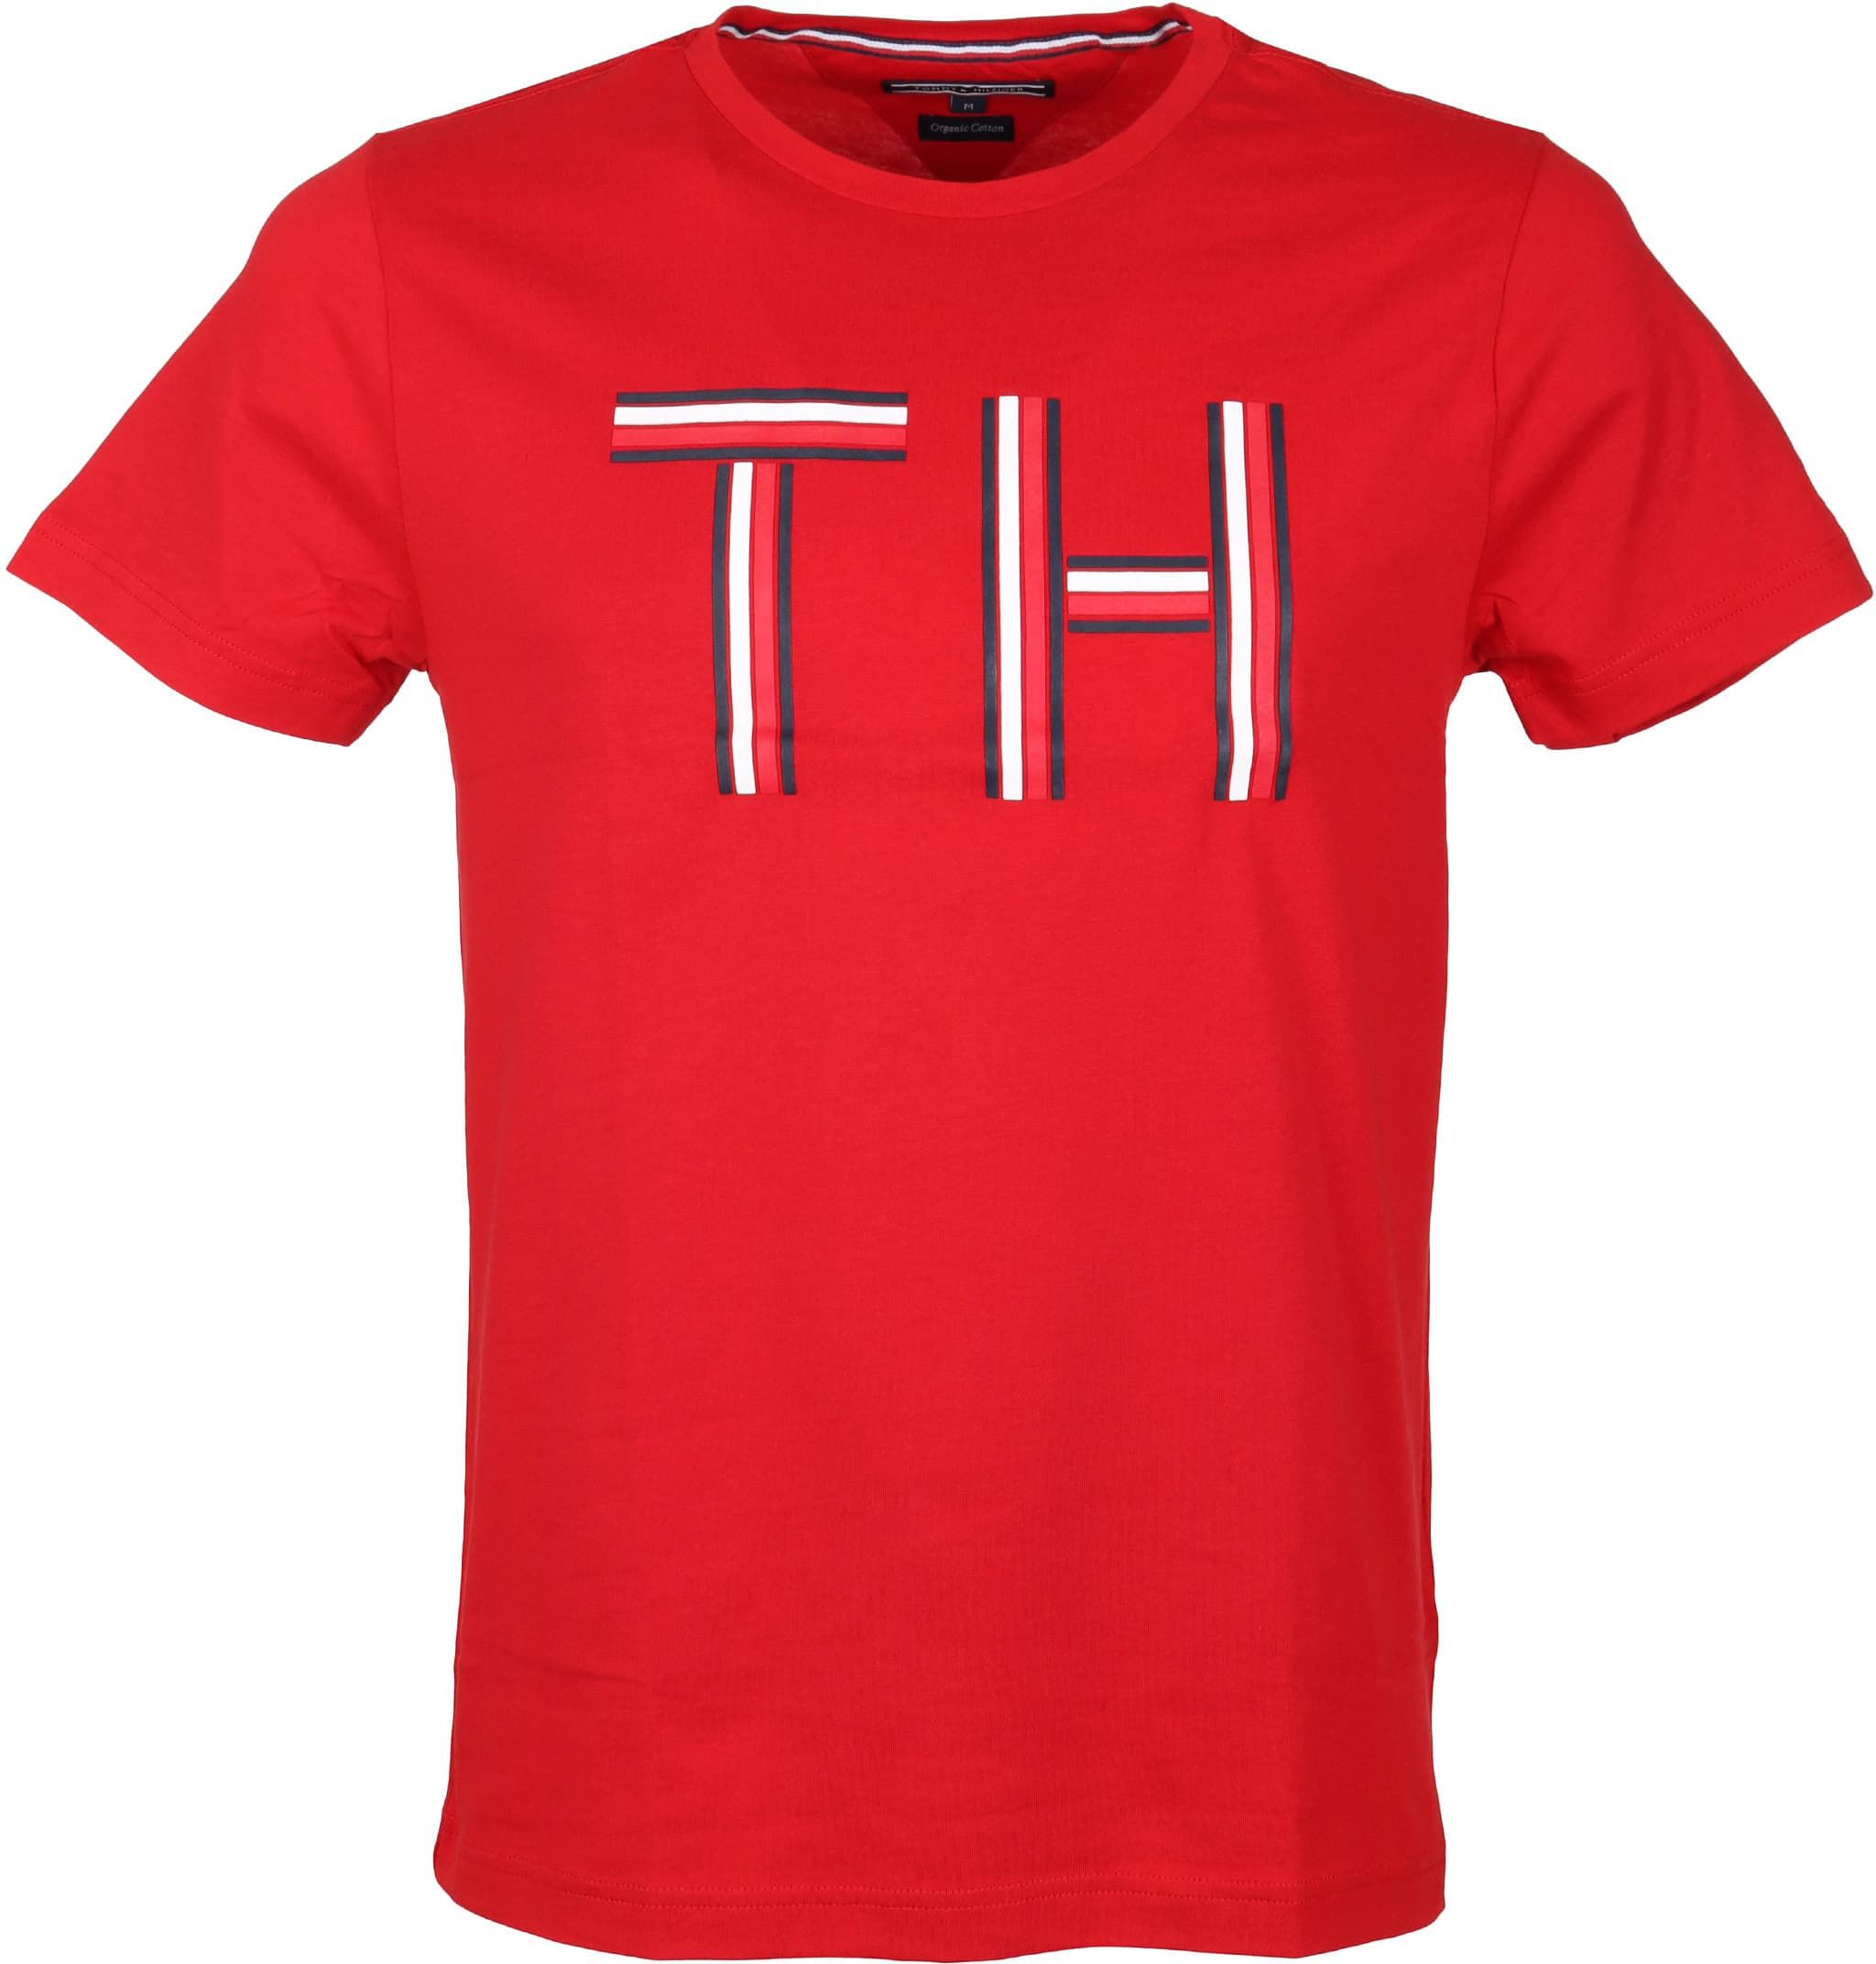 tommy hilfiger t shirt logo rood online bestellen suitable. Black Bedroom Furniture Sets. Home Design Ideas